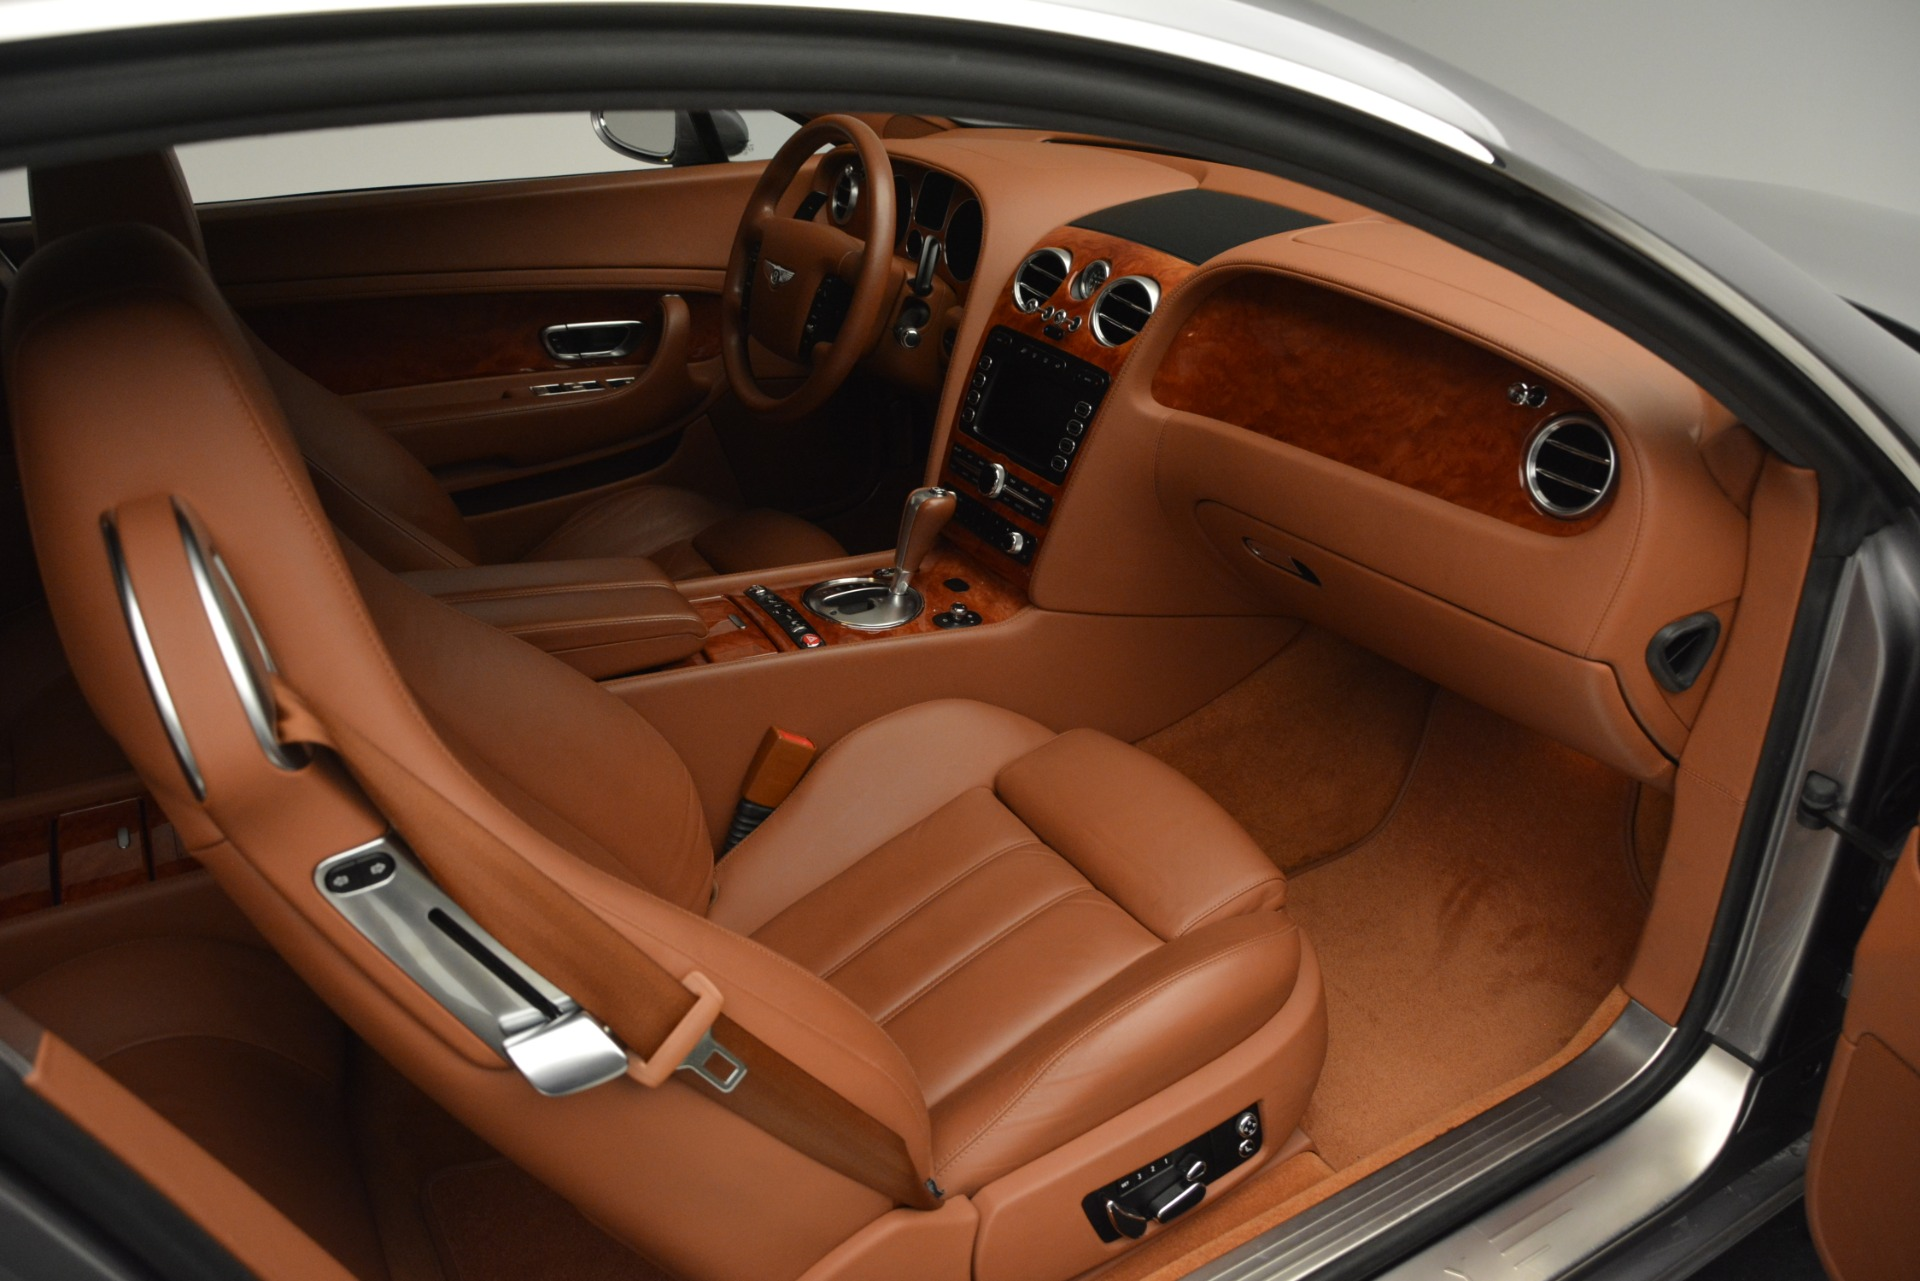 Used 2005 Bentley Continental GT GT Turbo For Sale In Greenwich, CT 2726_p25